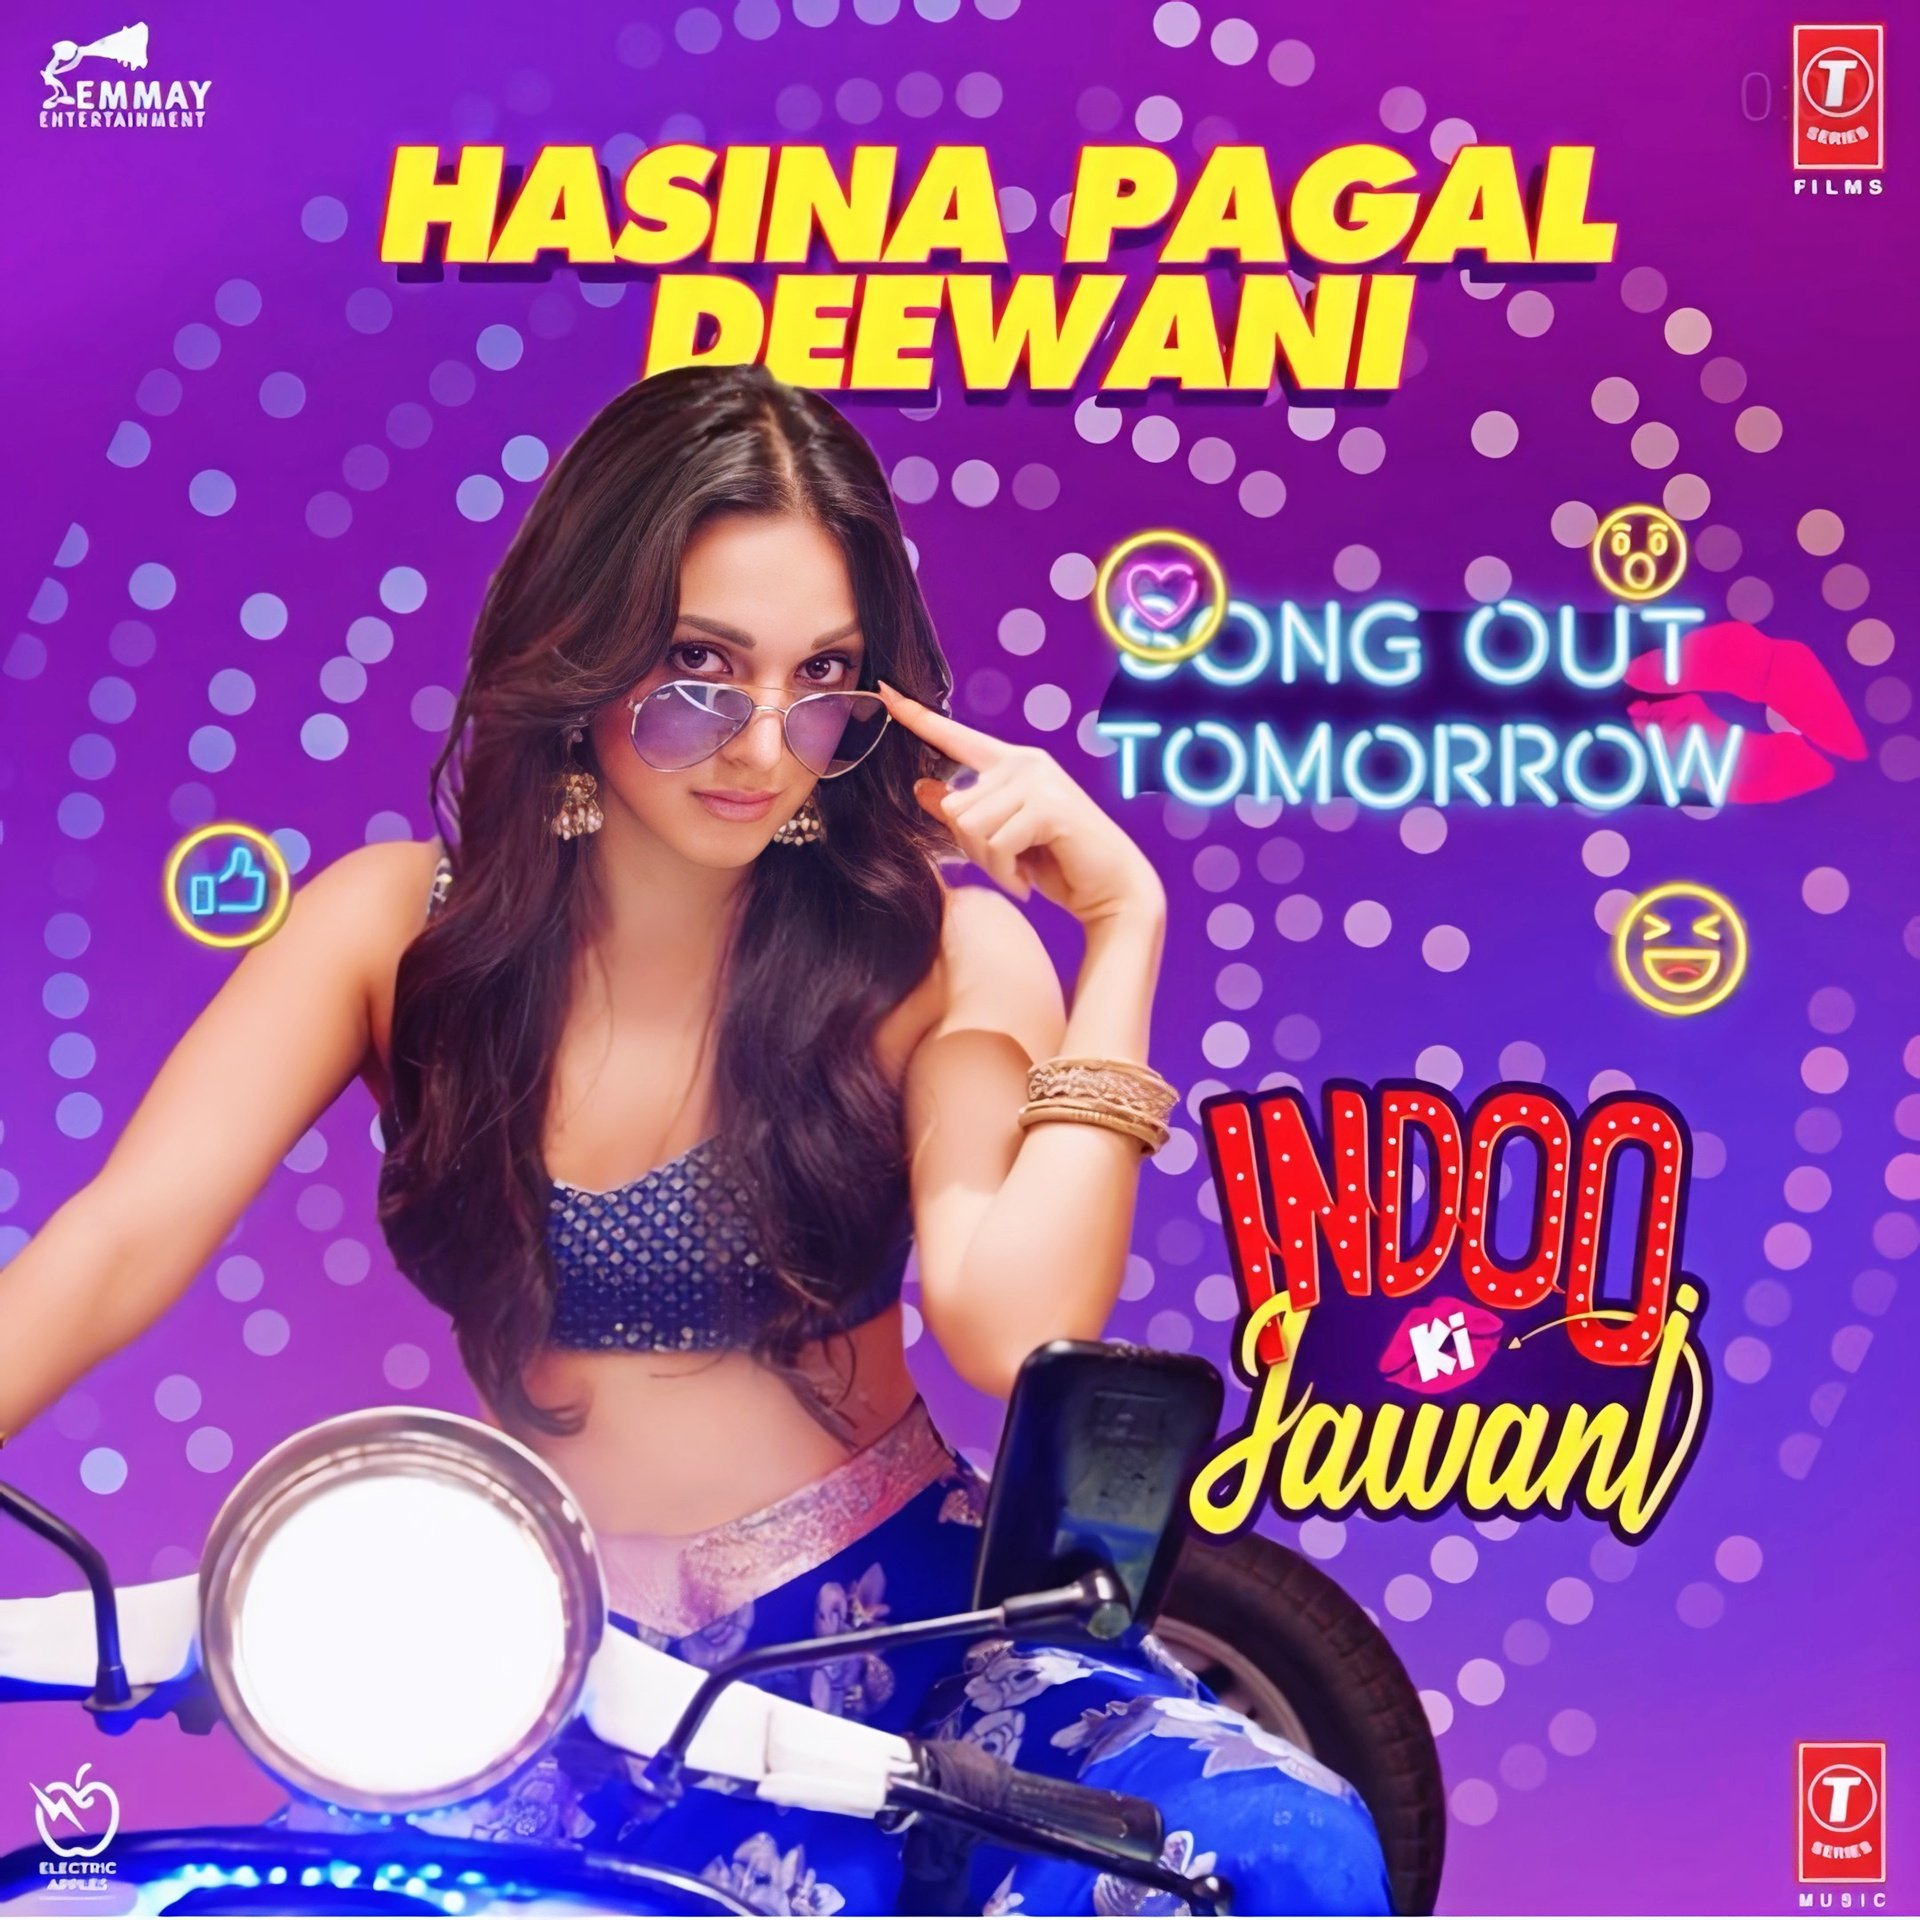 Hasina Pagal Deewani (Indoo Ki Jawani) 2020 Hindi Video Song 1080p HDRip Download